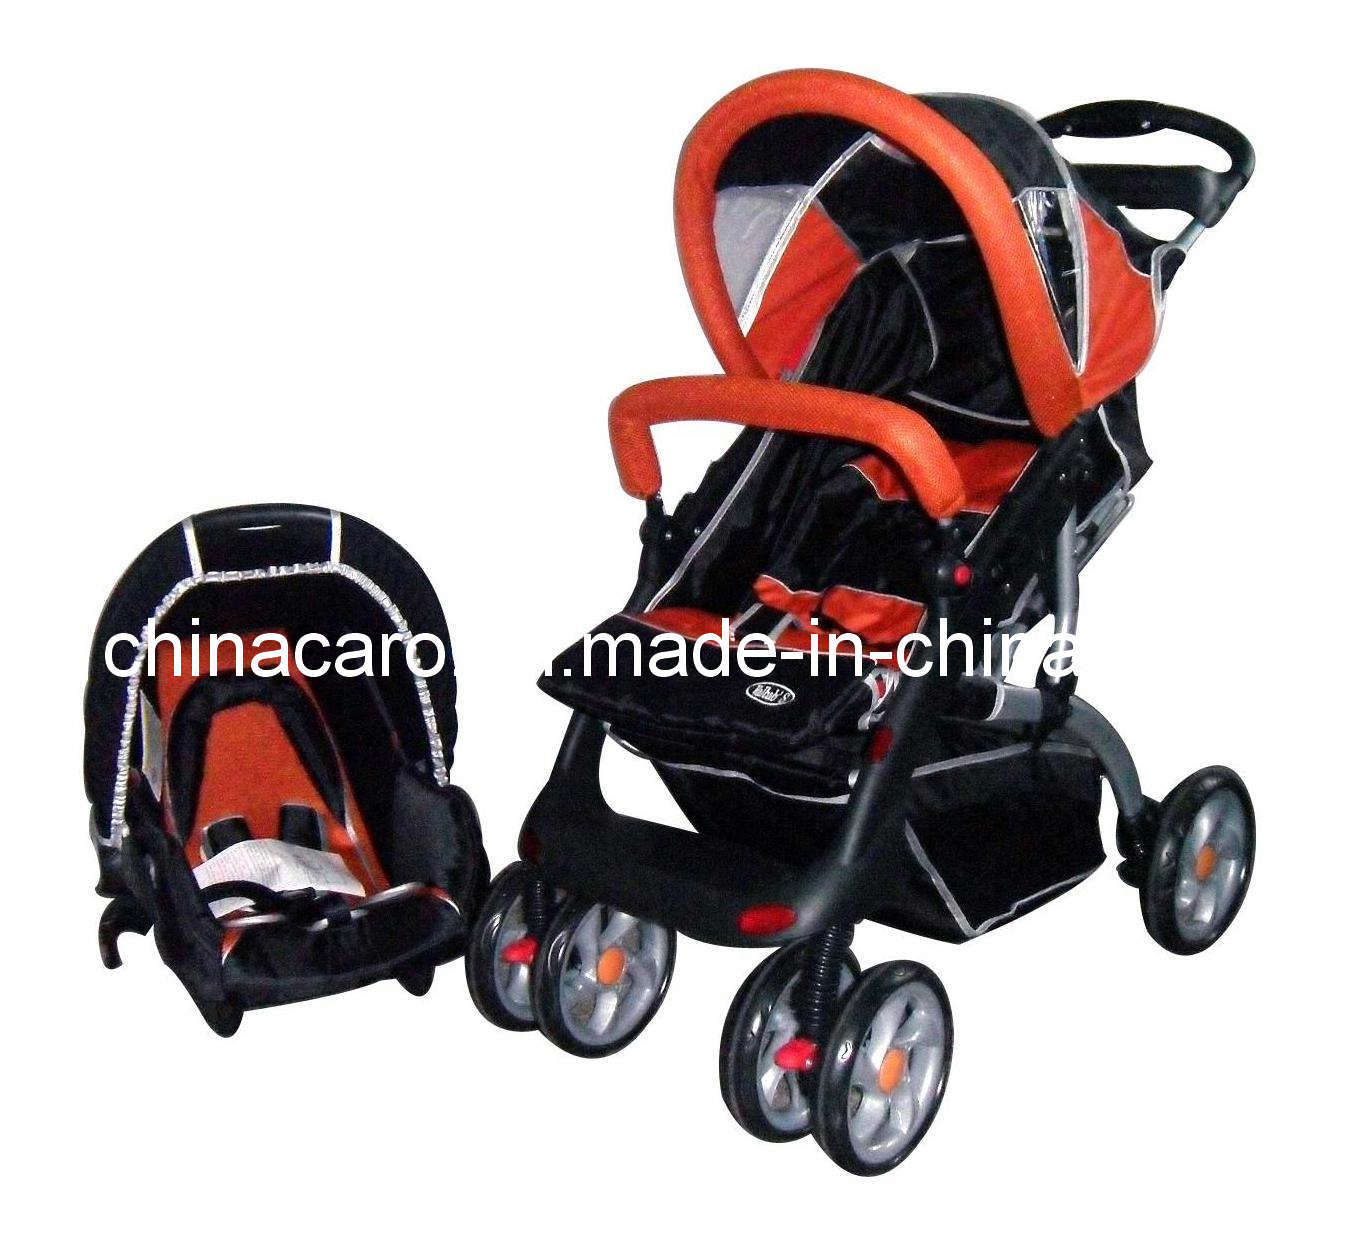 Nd Car Seat For Baby